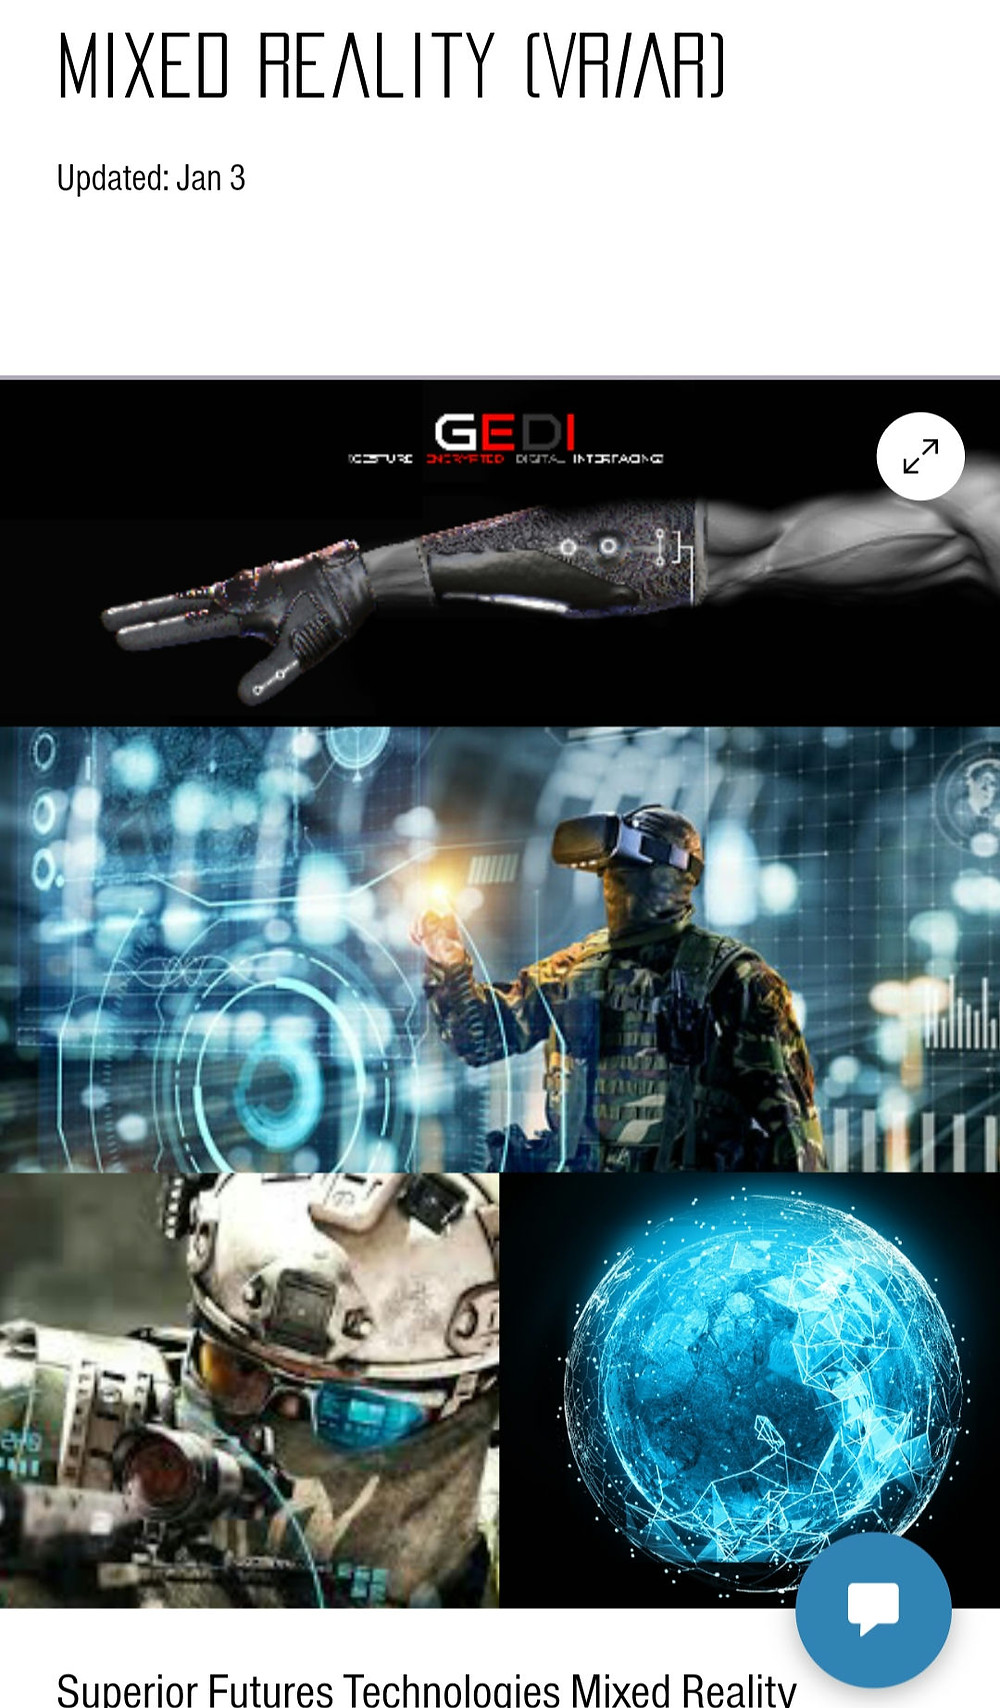 Superior Futures Technologies, Mixed Reality, Virtual Reality, Augmented Reality, Synthetic Training Environment, Simulation, Realism, HoloLens, IVAS, STE CFT, AFC, Army Futures Command